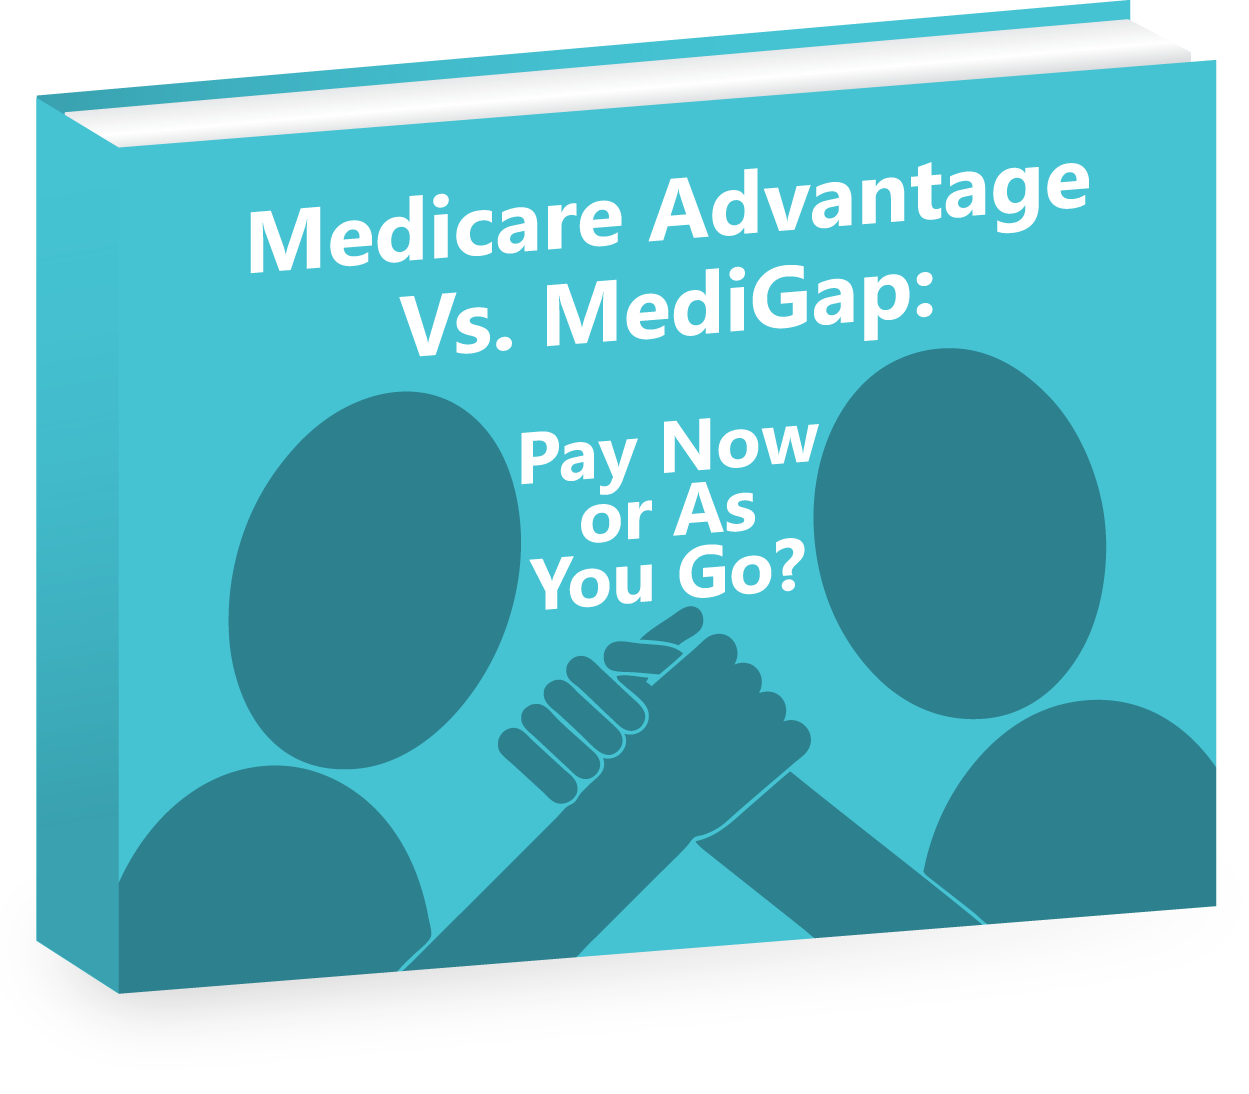 Medicare Advantage Vs. MediGap: Pay Now or As You go?